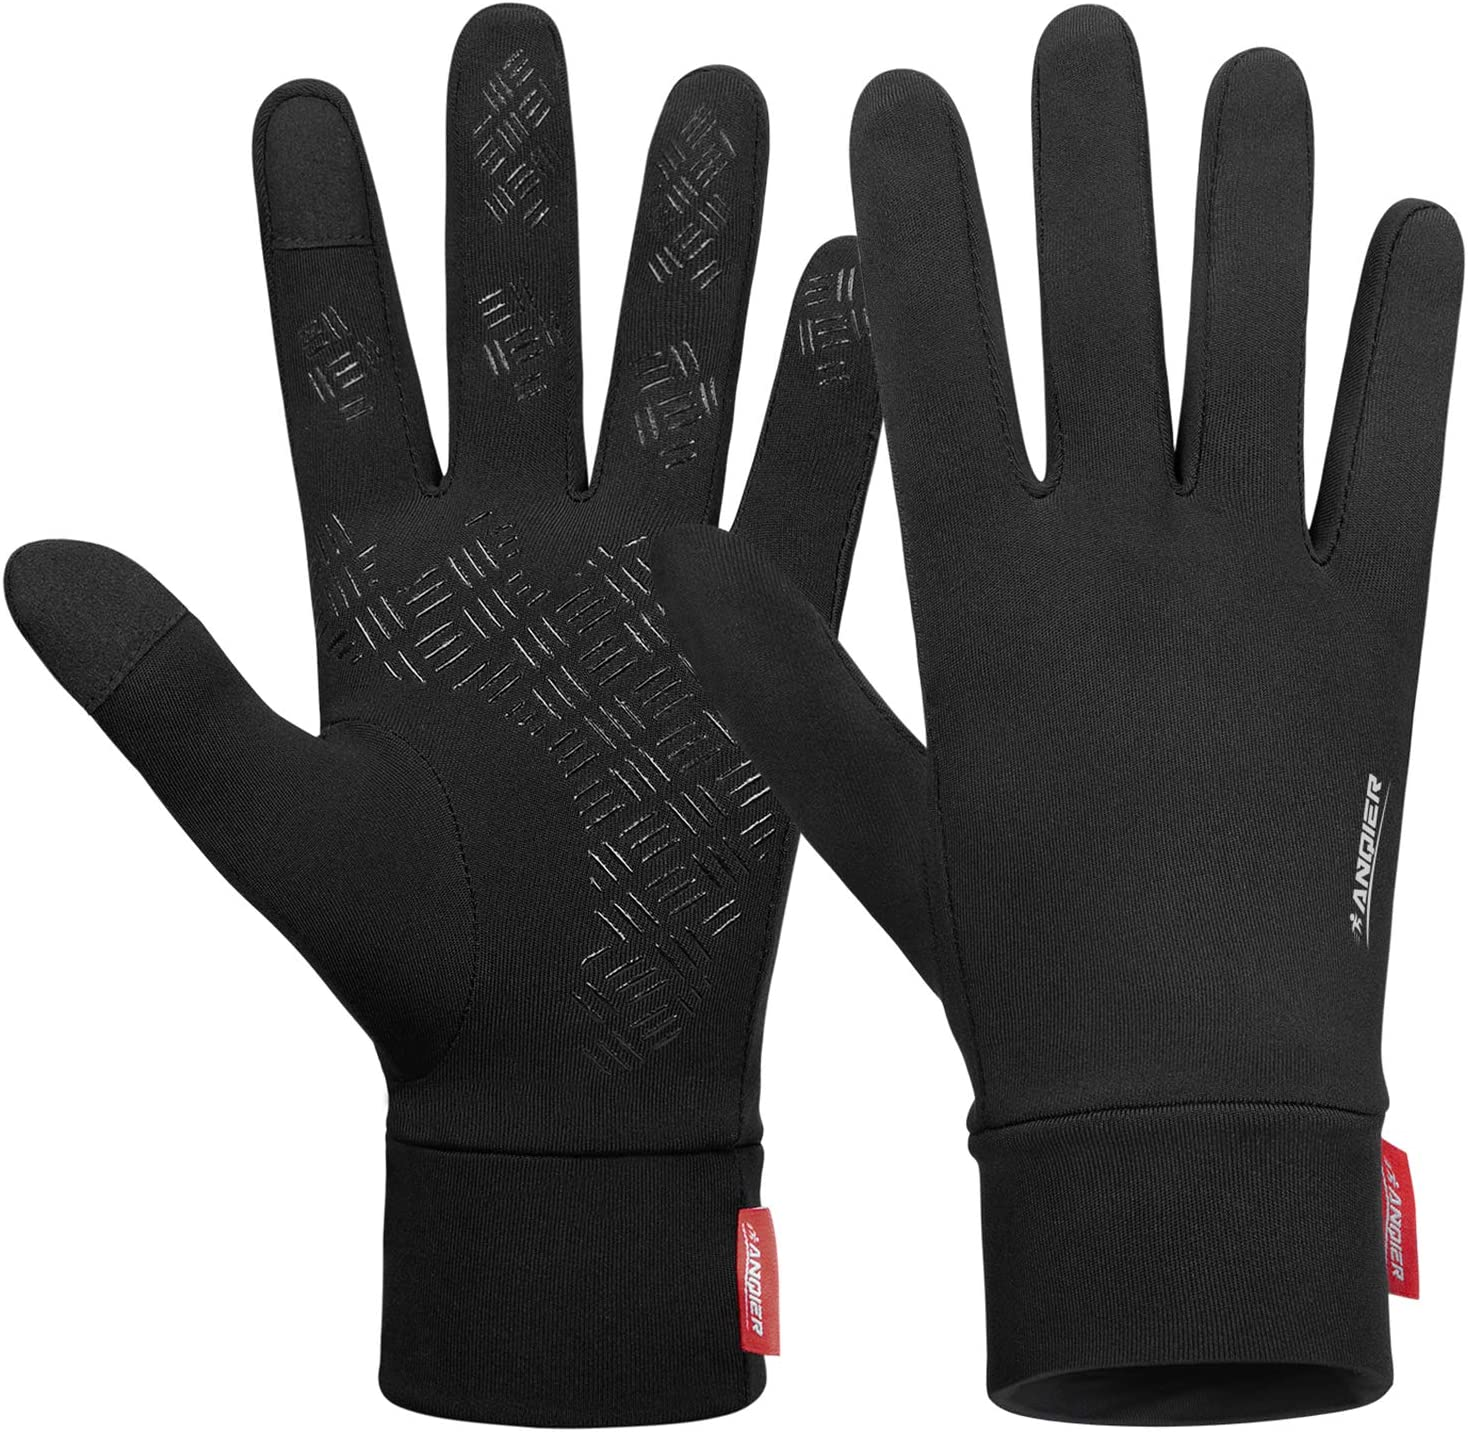 Lanyi Running Sports Gloves Compression Lightweight Windproof